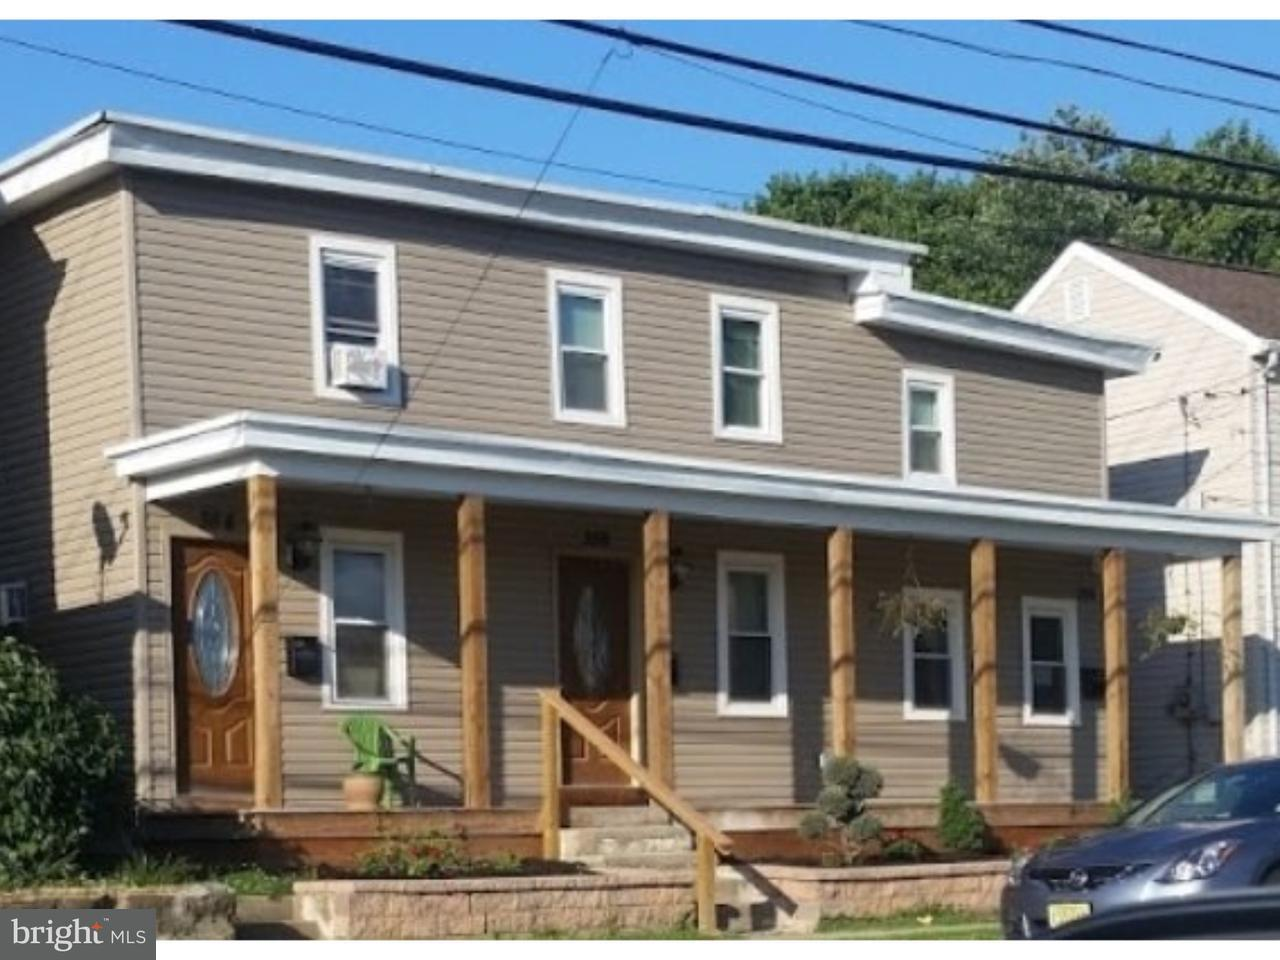 Single Family Home for Rent at 356-1 N MAIN ST #1 Smyrna, Delaware 19977 United States